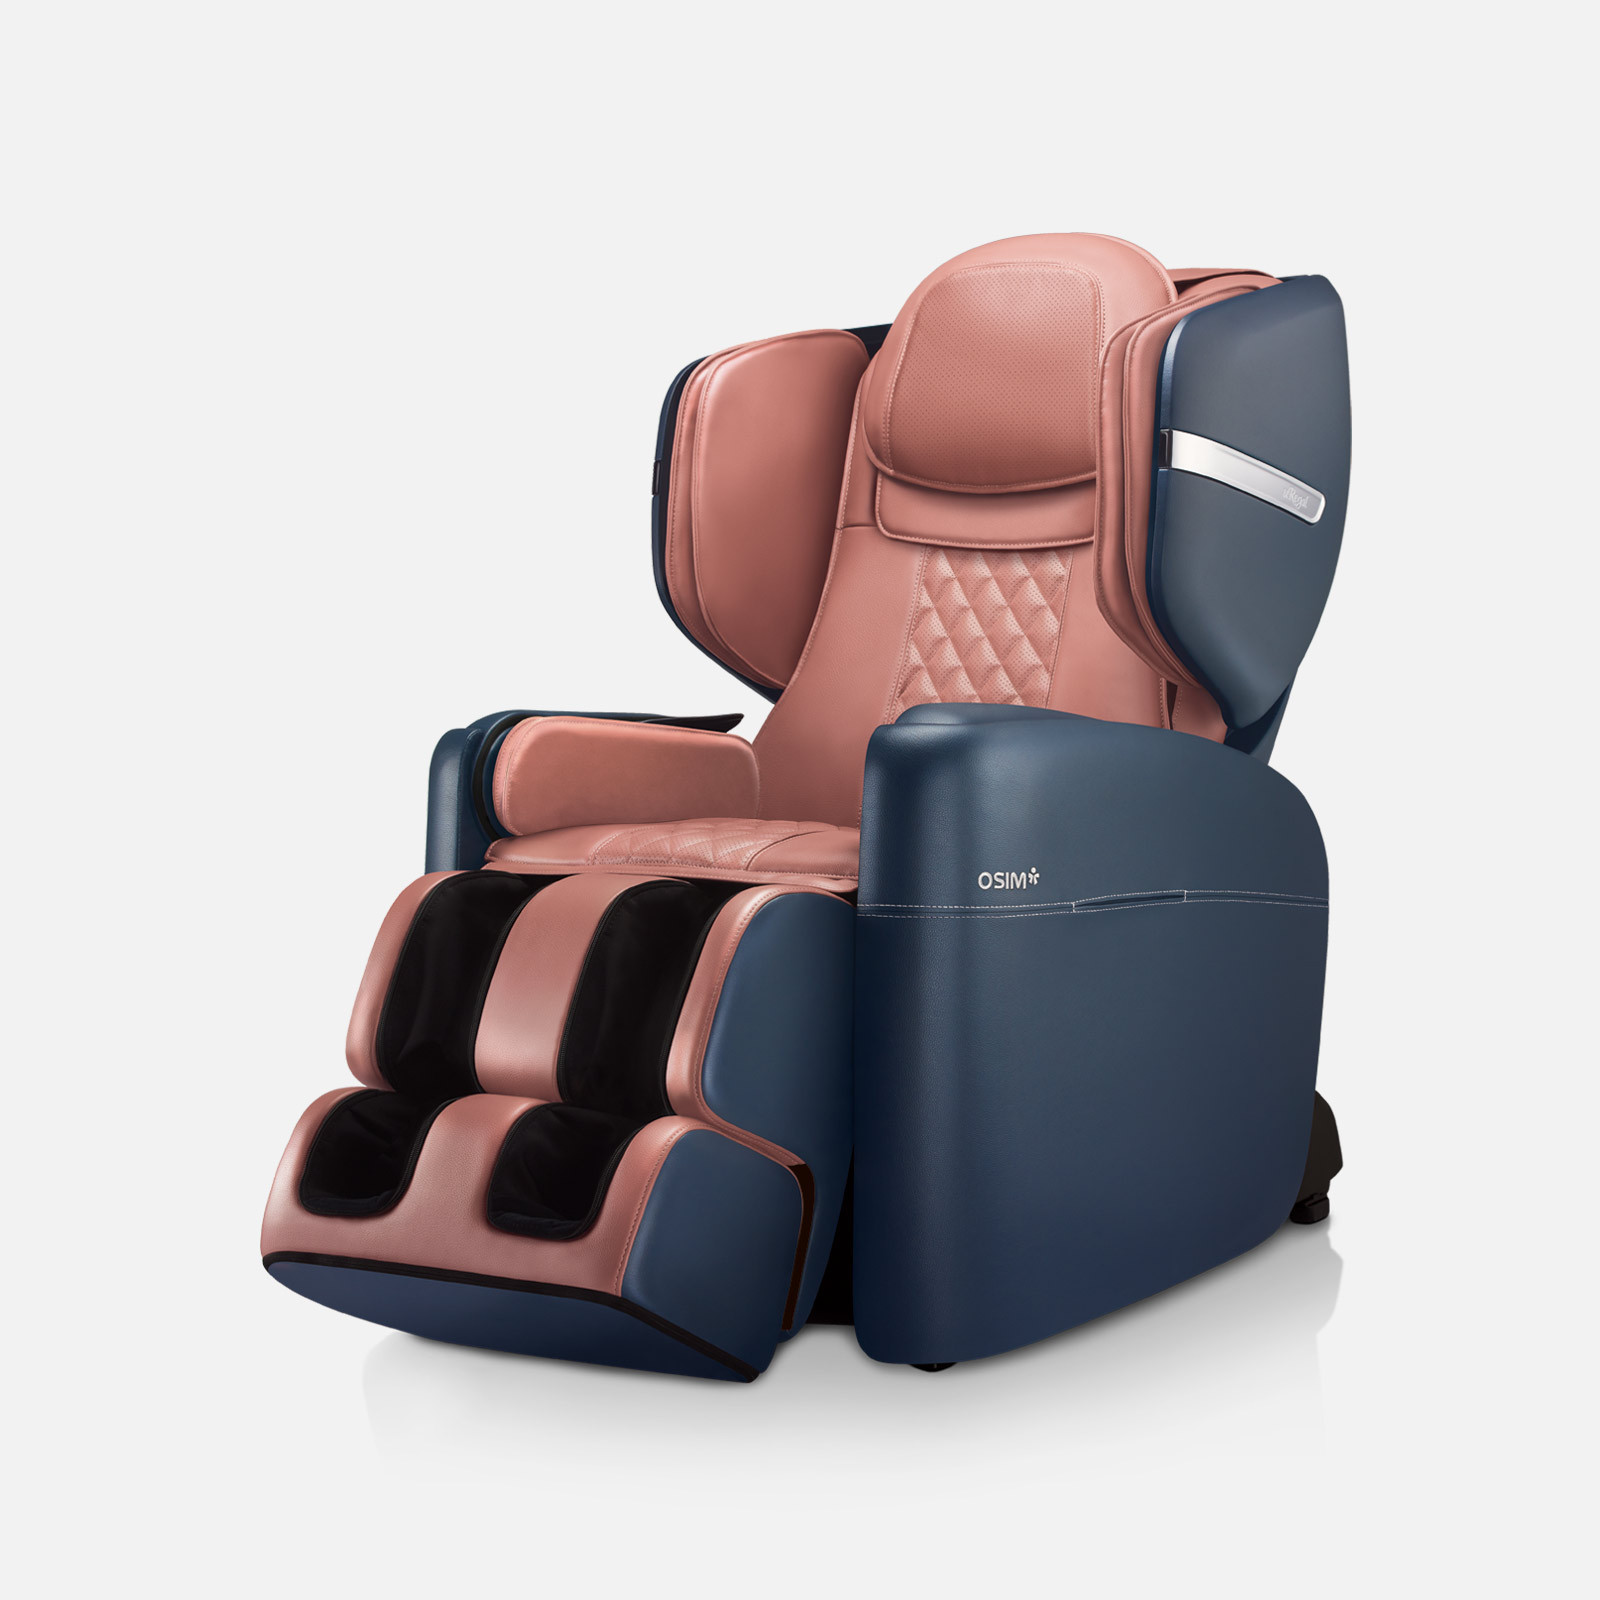 uRegal Massage Chair